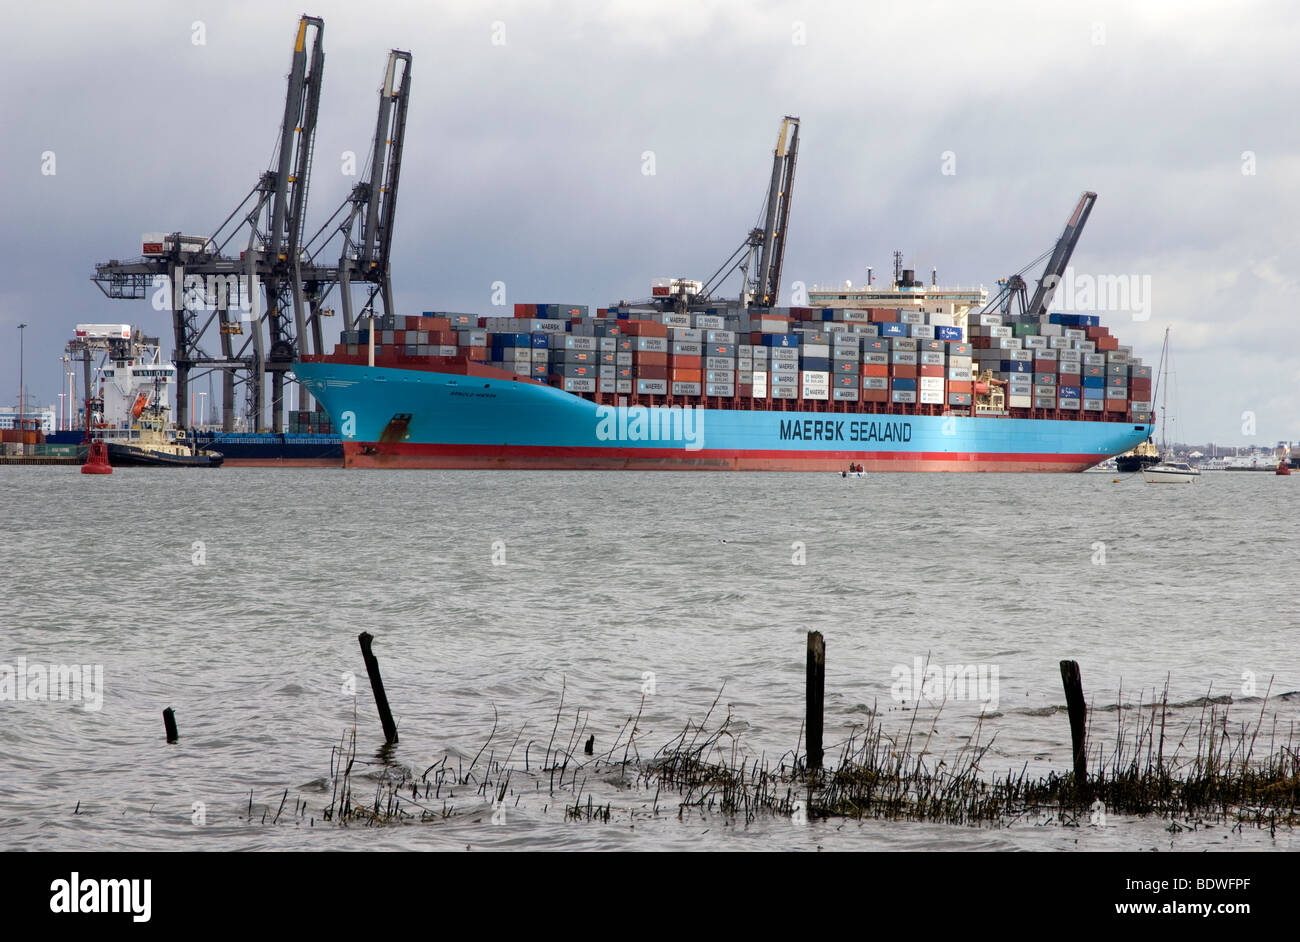 The Arnold Maersk container ship docked in port of Southampton, Hampshire, England, UK. - Stock Image